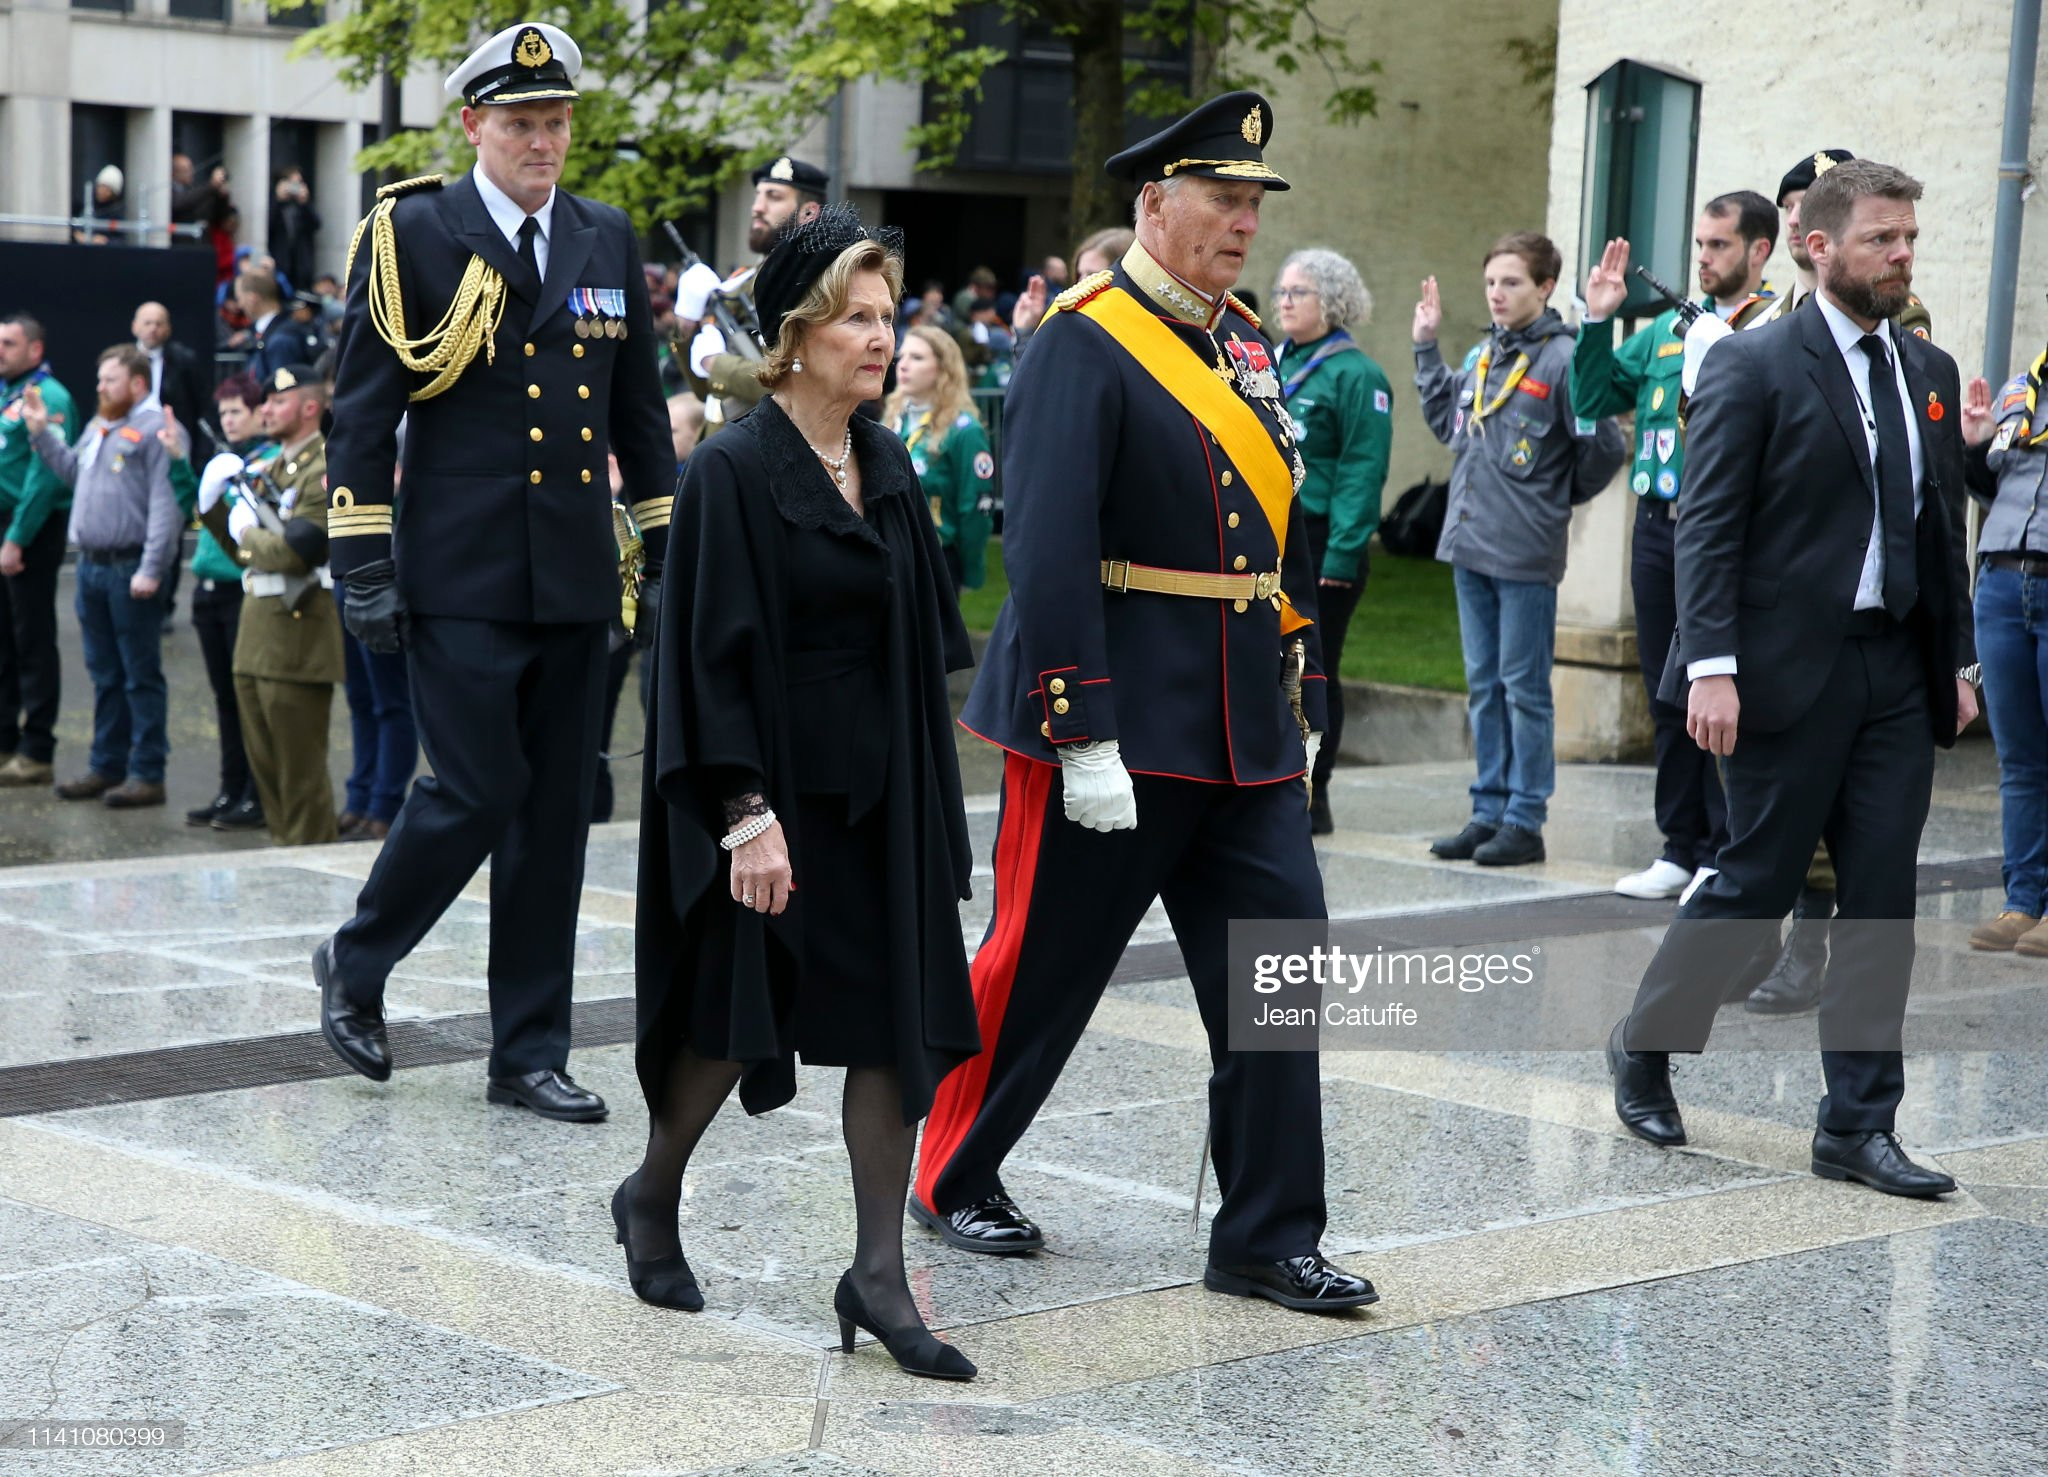 Похороны Великого Герцога Жана https://media.gettyimages.com/photos/king-harald-v-of-norway-and-queen-sonja-of-norway-arrive-for-the-of-picture-id1141080399?s=2048x2048